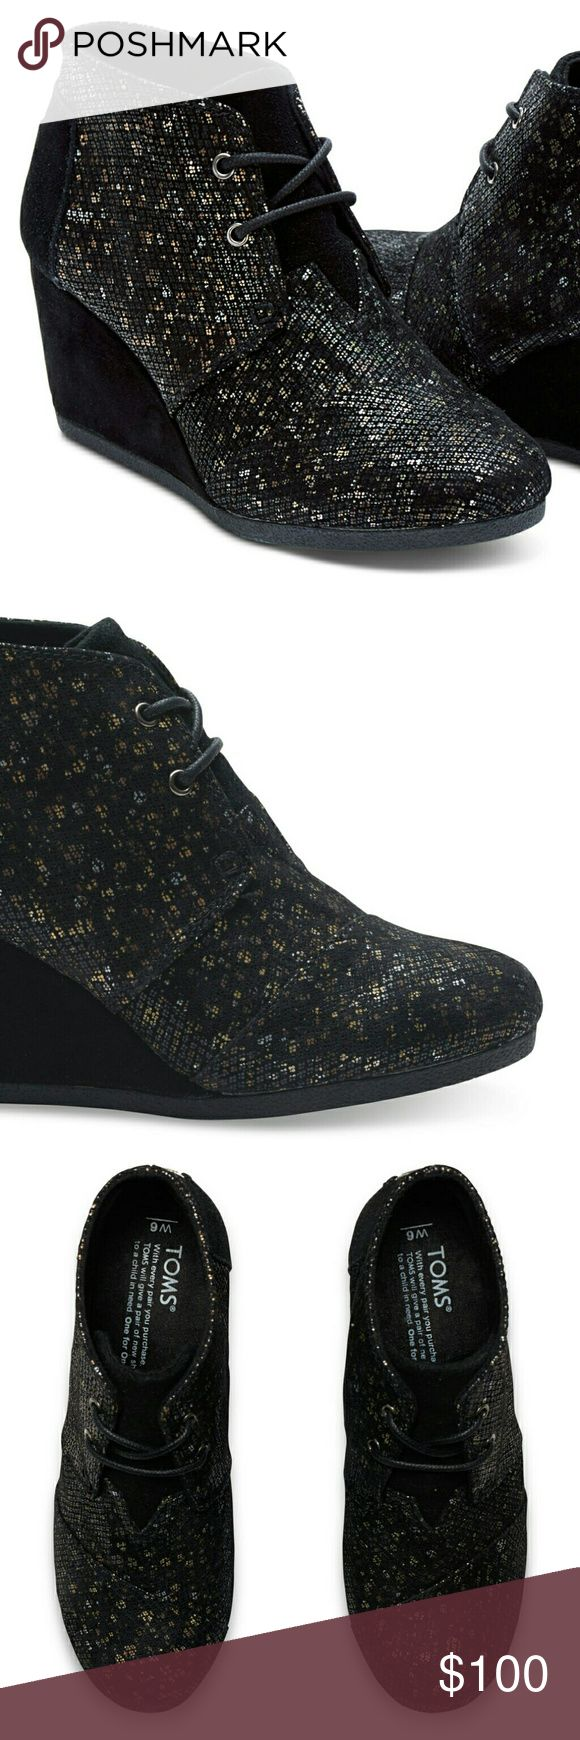 TOMS Desert Wedges Black Shimmer Print New without box.  Made with leather, these black shoes are complete with a slightly padded sole to comfort every step.  Size W6 TOMS Shoes Wedges